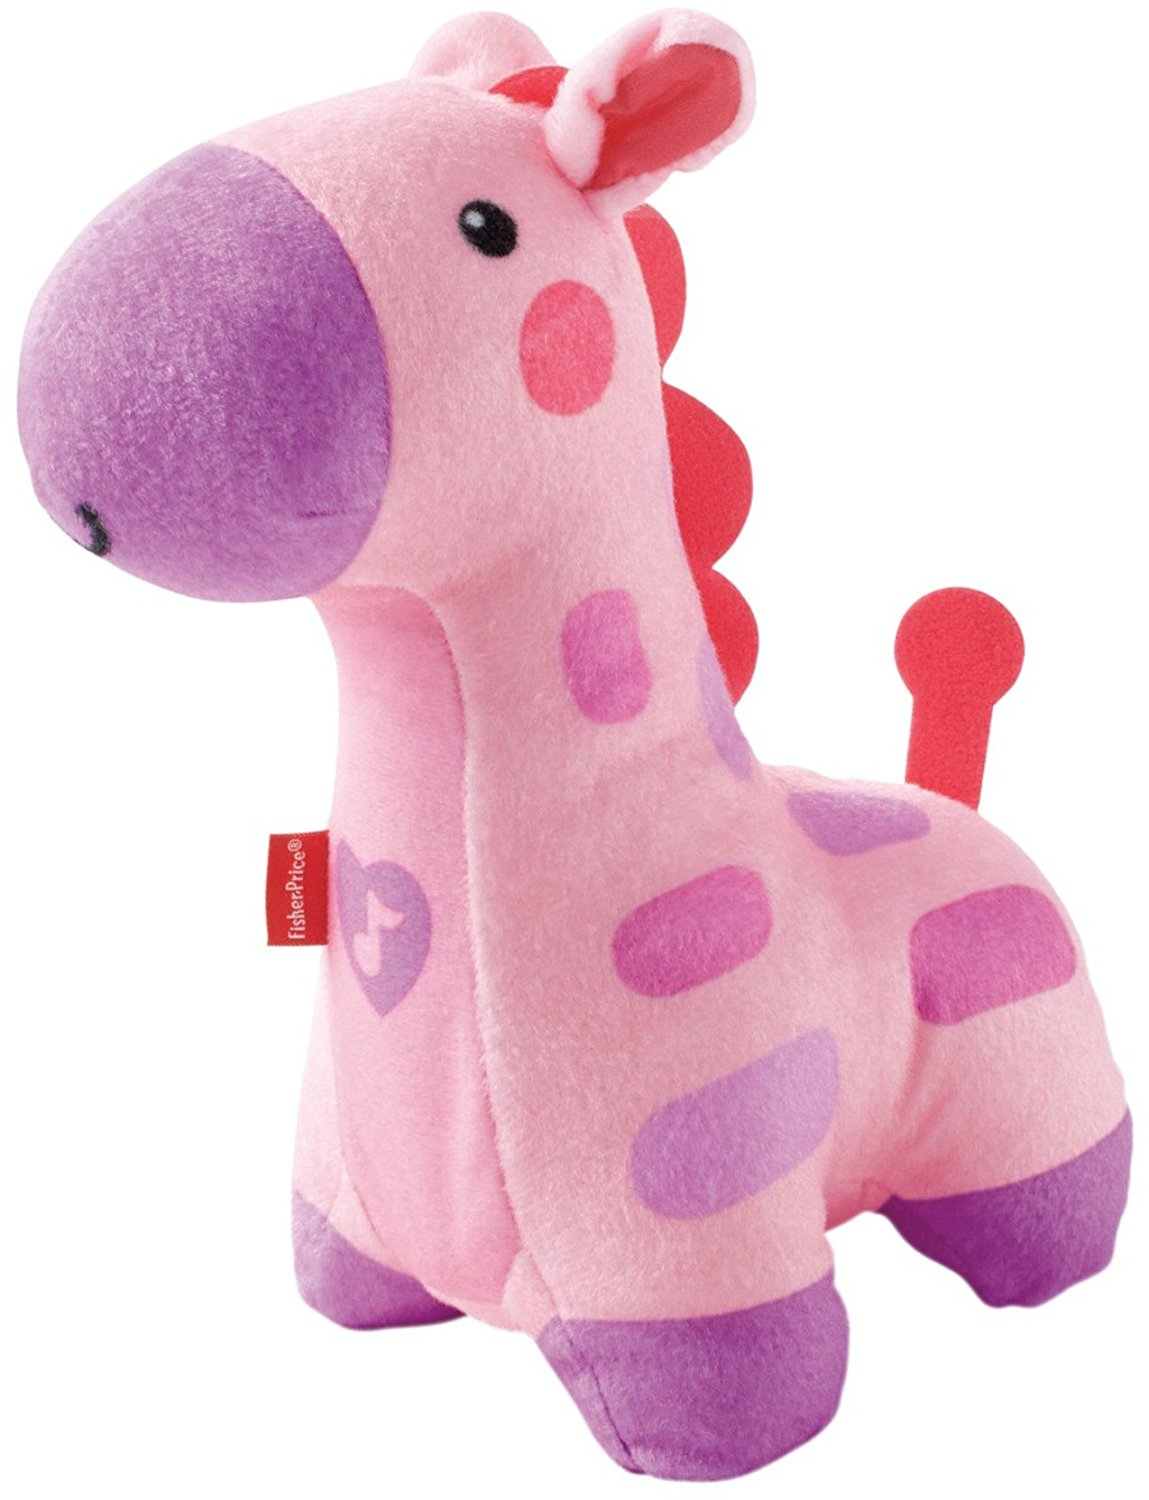 Fisher Price Soothe and Glow Giraffe Yellow CCV17, Pink CFD15